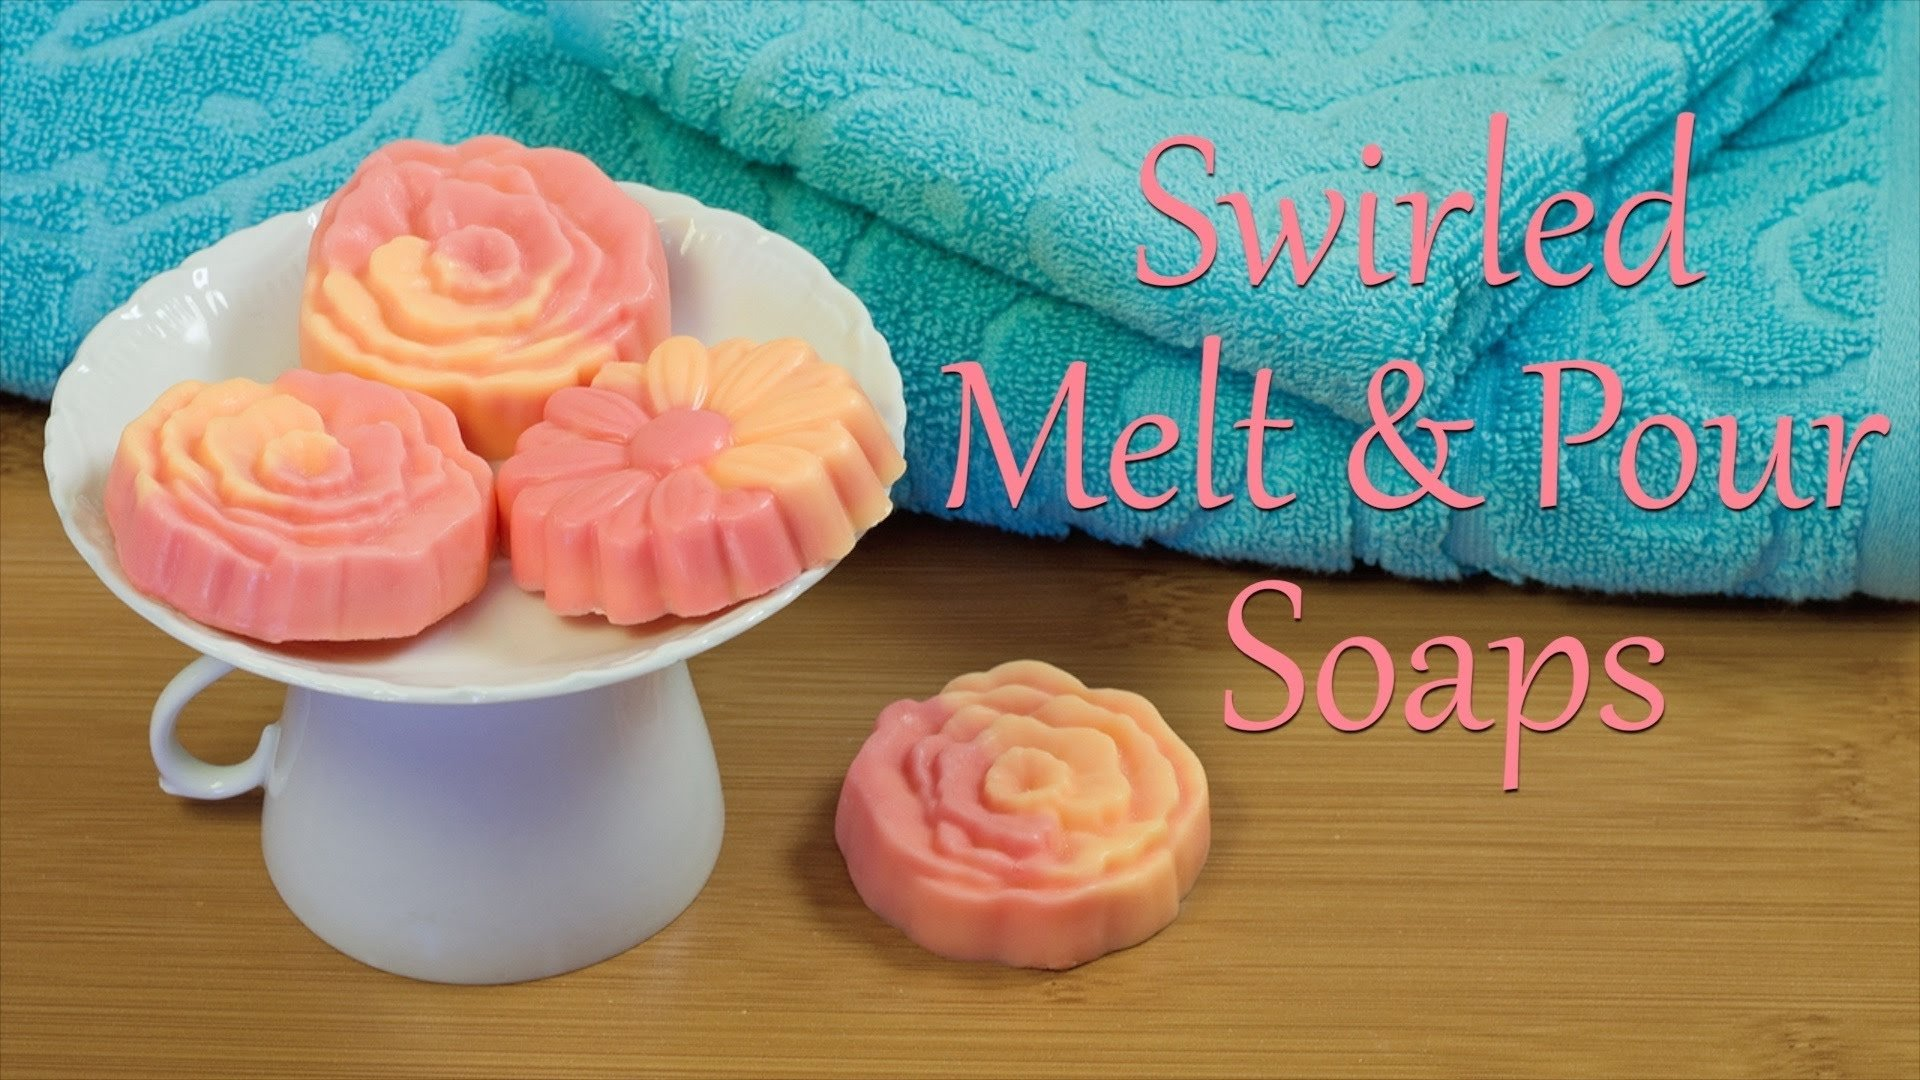 10 Nice Melt And Pour Soap Ideas melt and pour soap how to make swirled melt and pour soaps youtube 2021